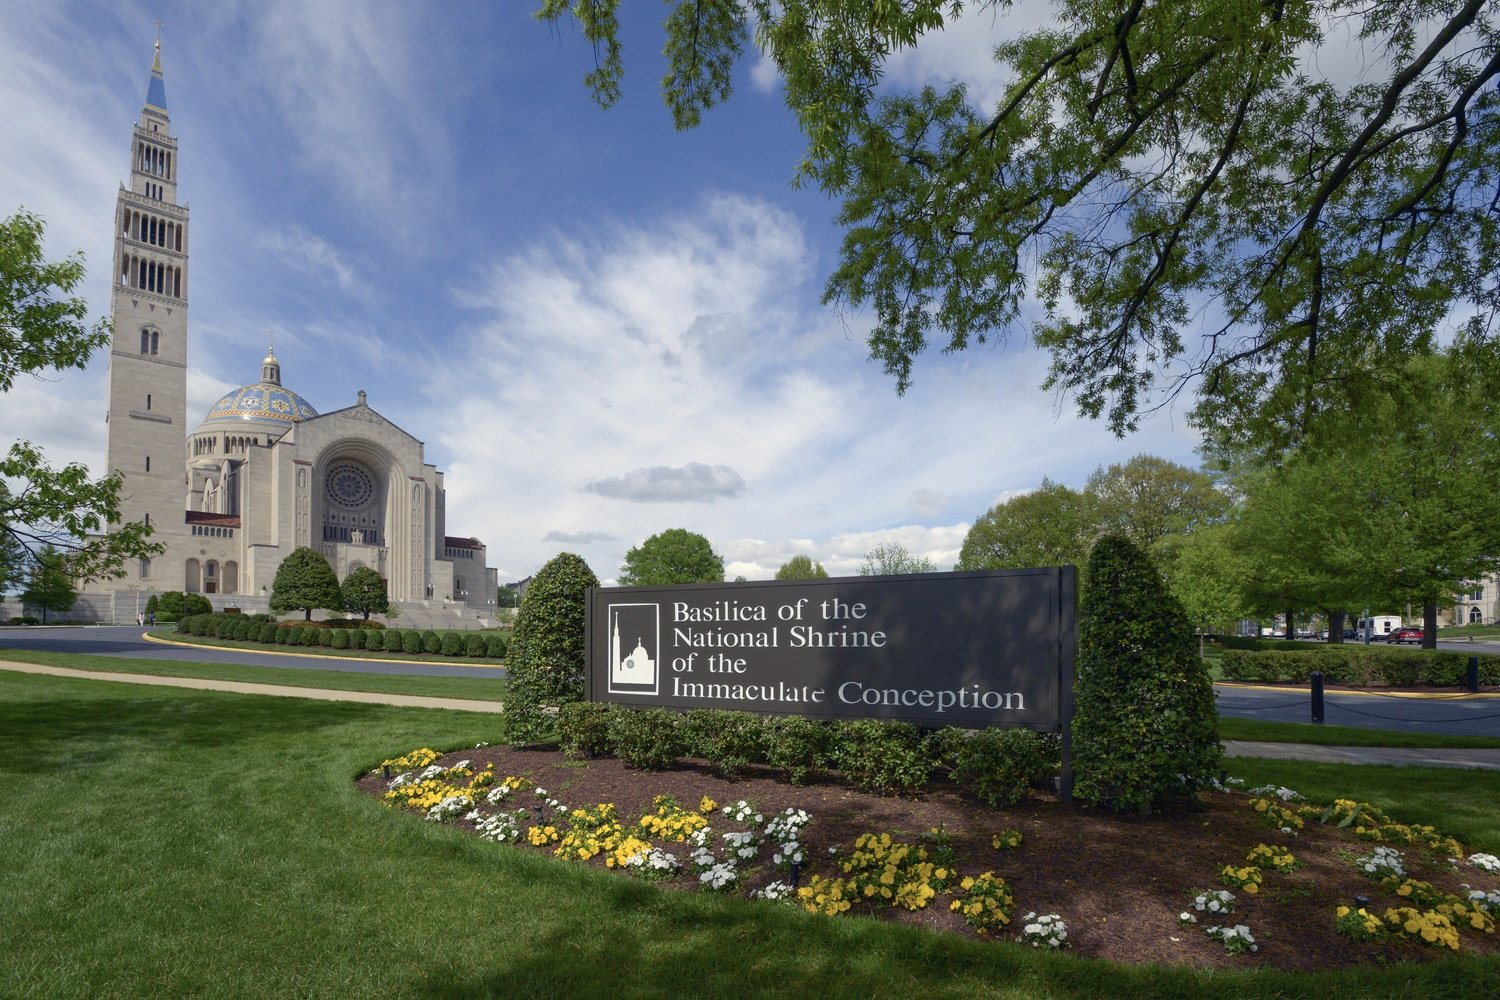 Basilica of the National Shrine of the Immaculate Conception - Brookland - Washington, DC